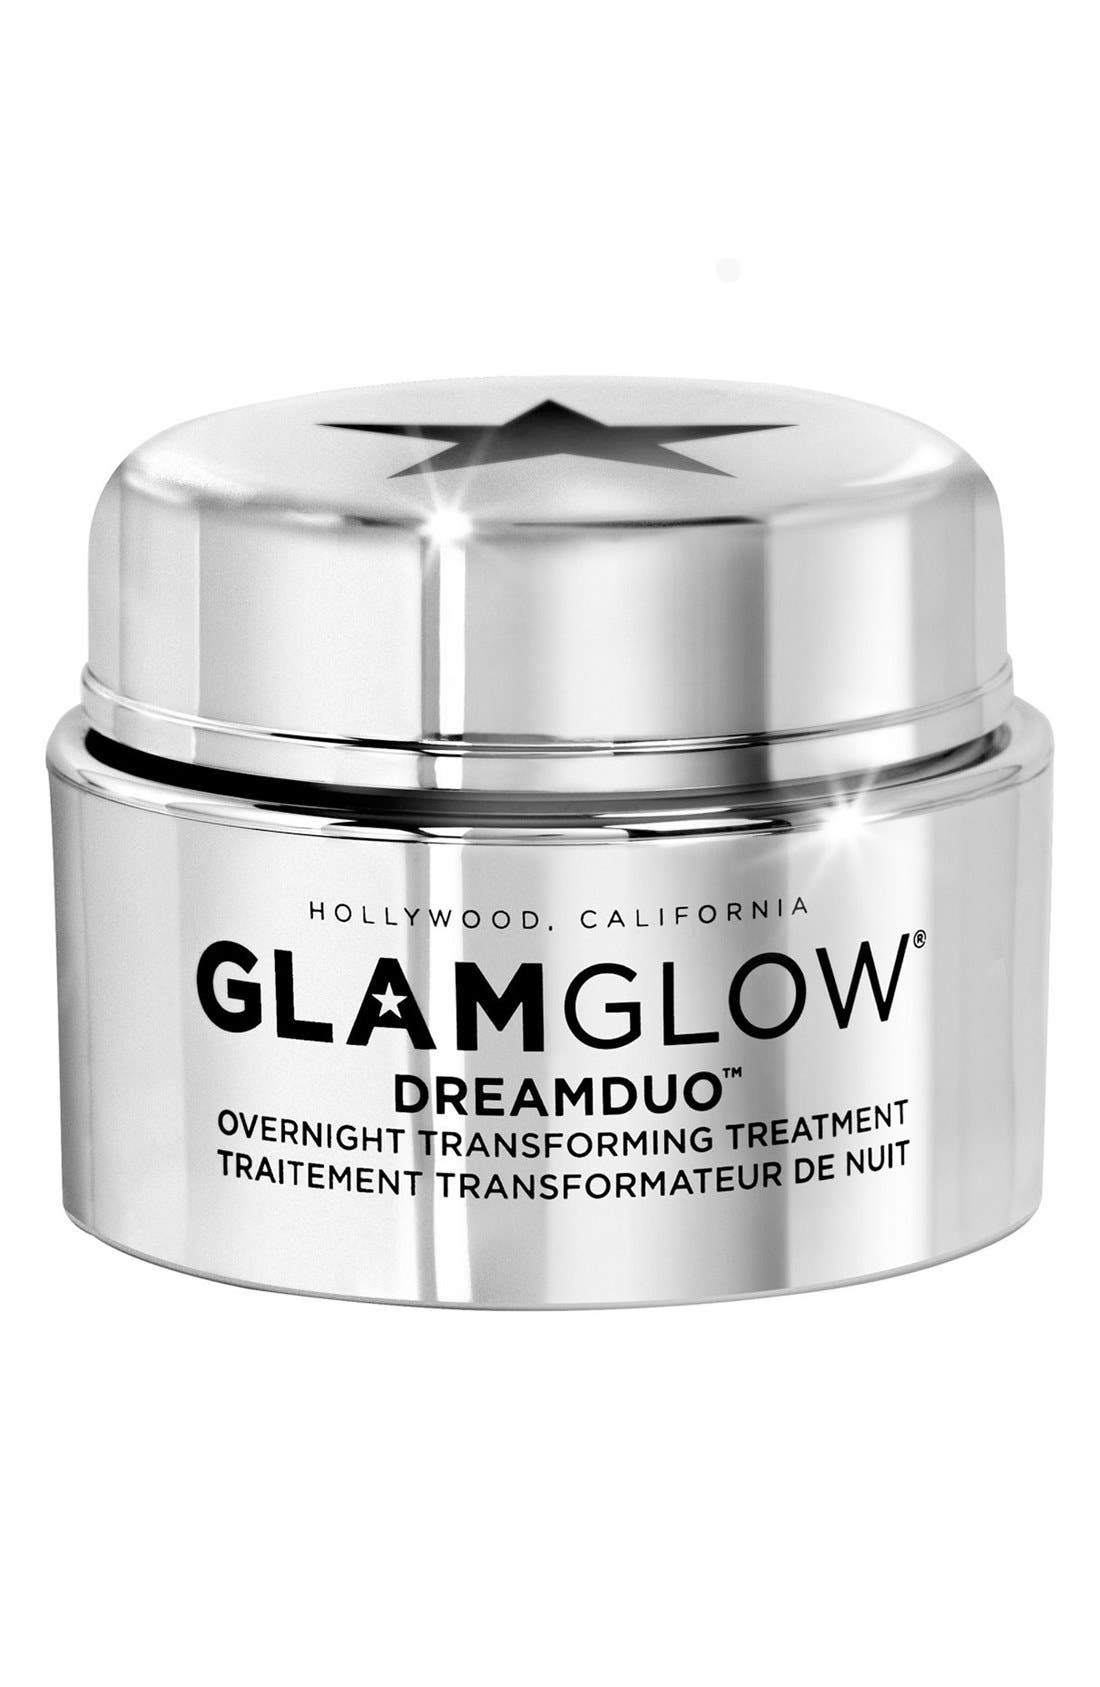 GLAMGLOW® DREAMDUO™ Overnight Transforming Treatment